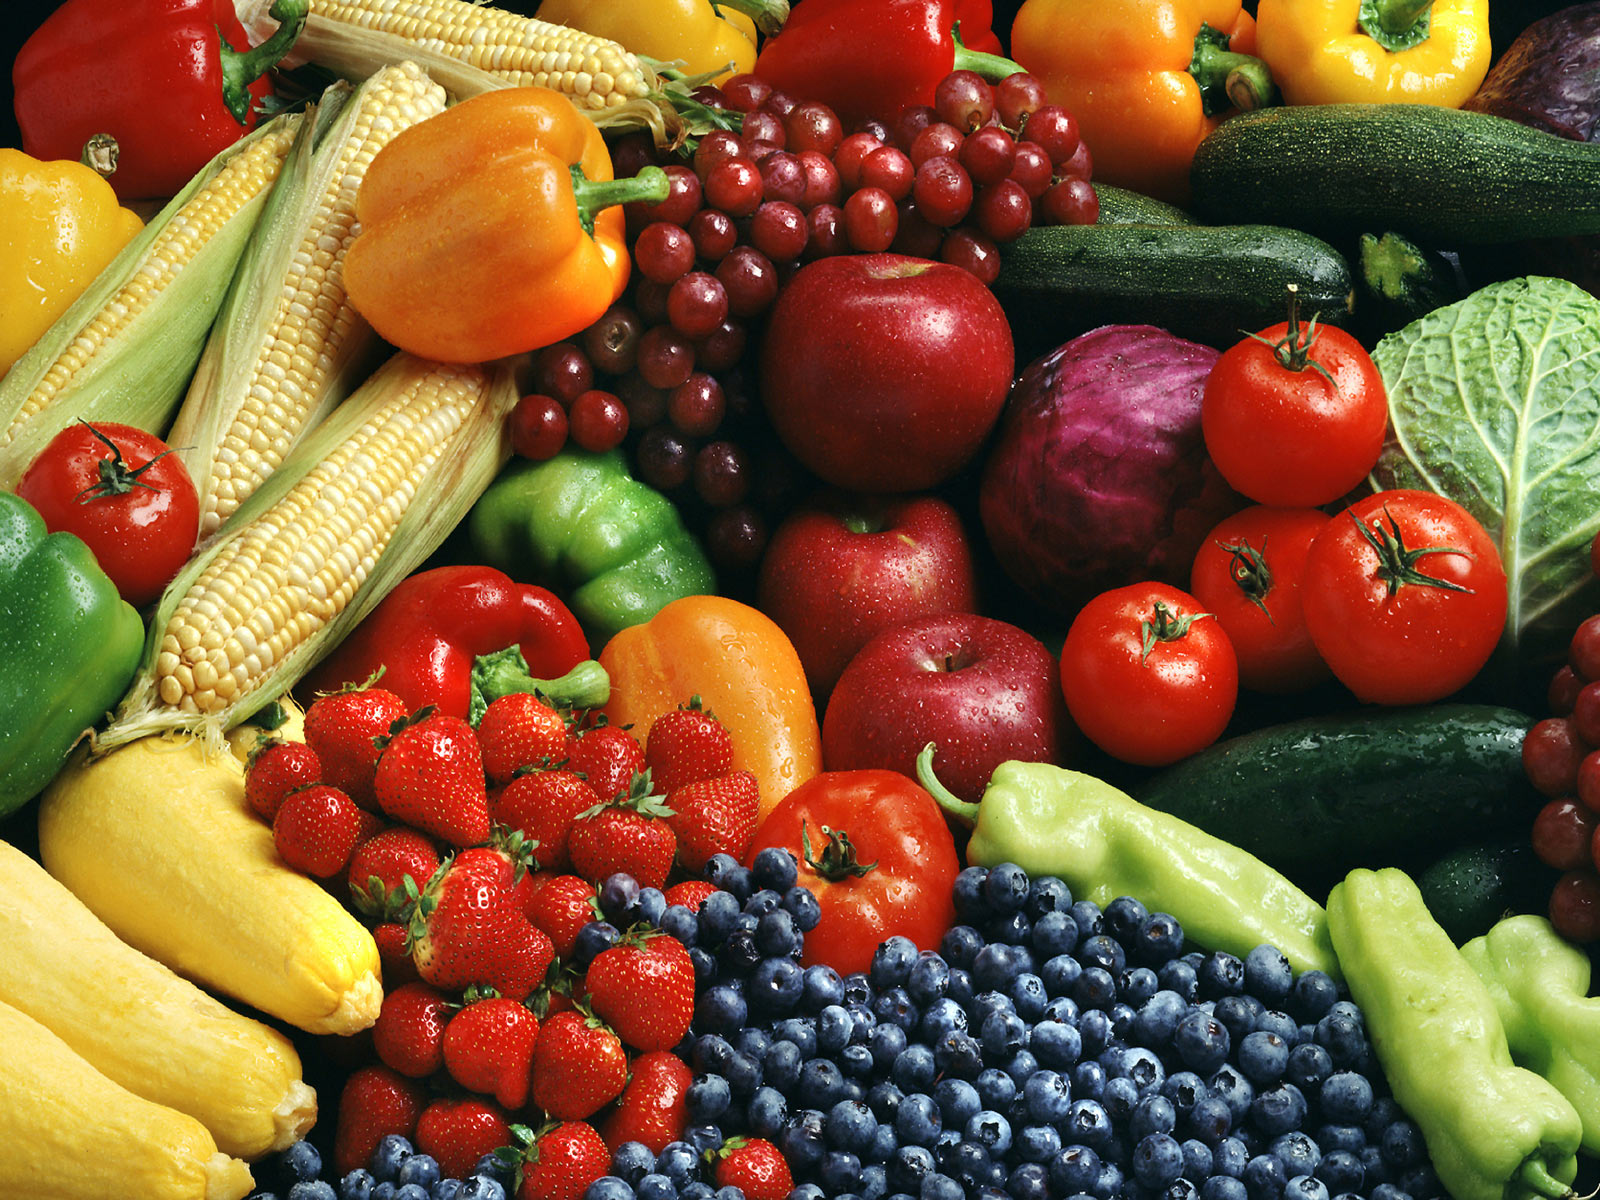 Desktop hd pictures of fruits and vegetables for kids Download 3d HD 1600x1200